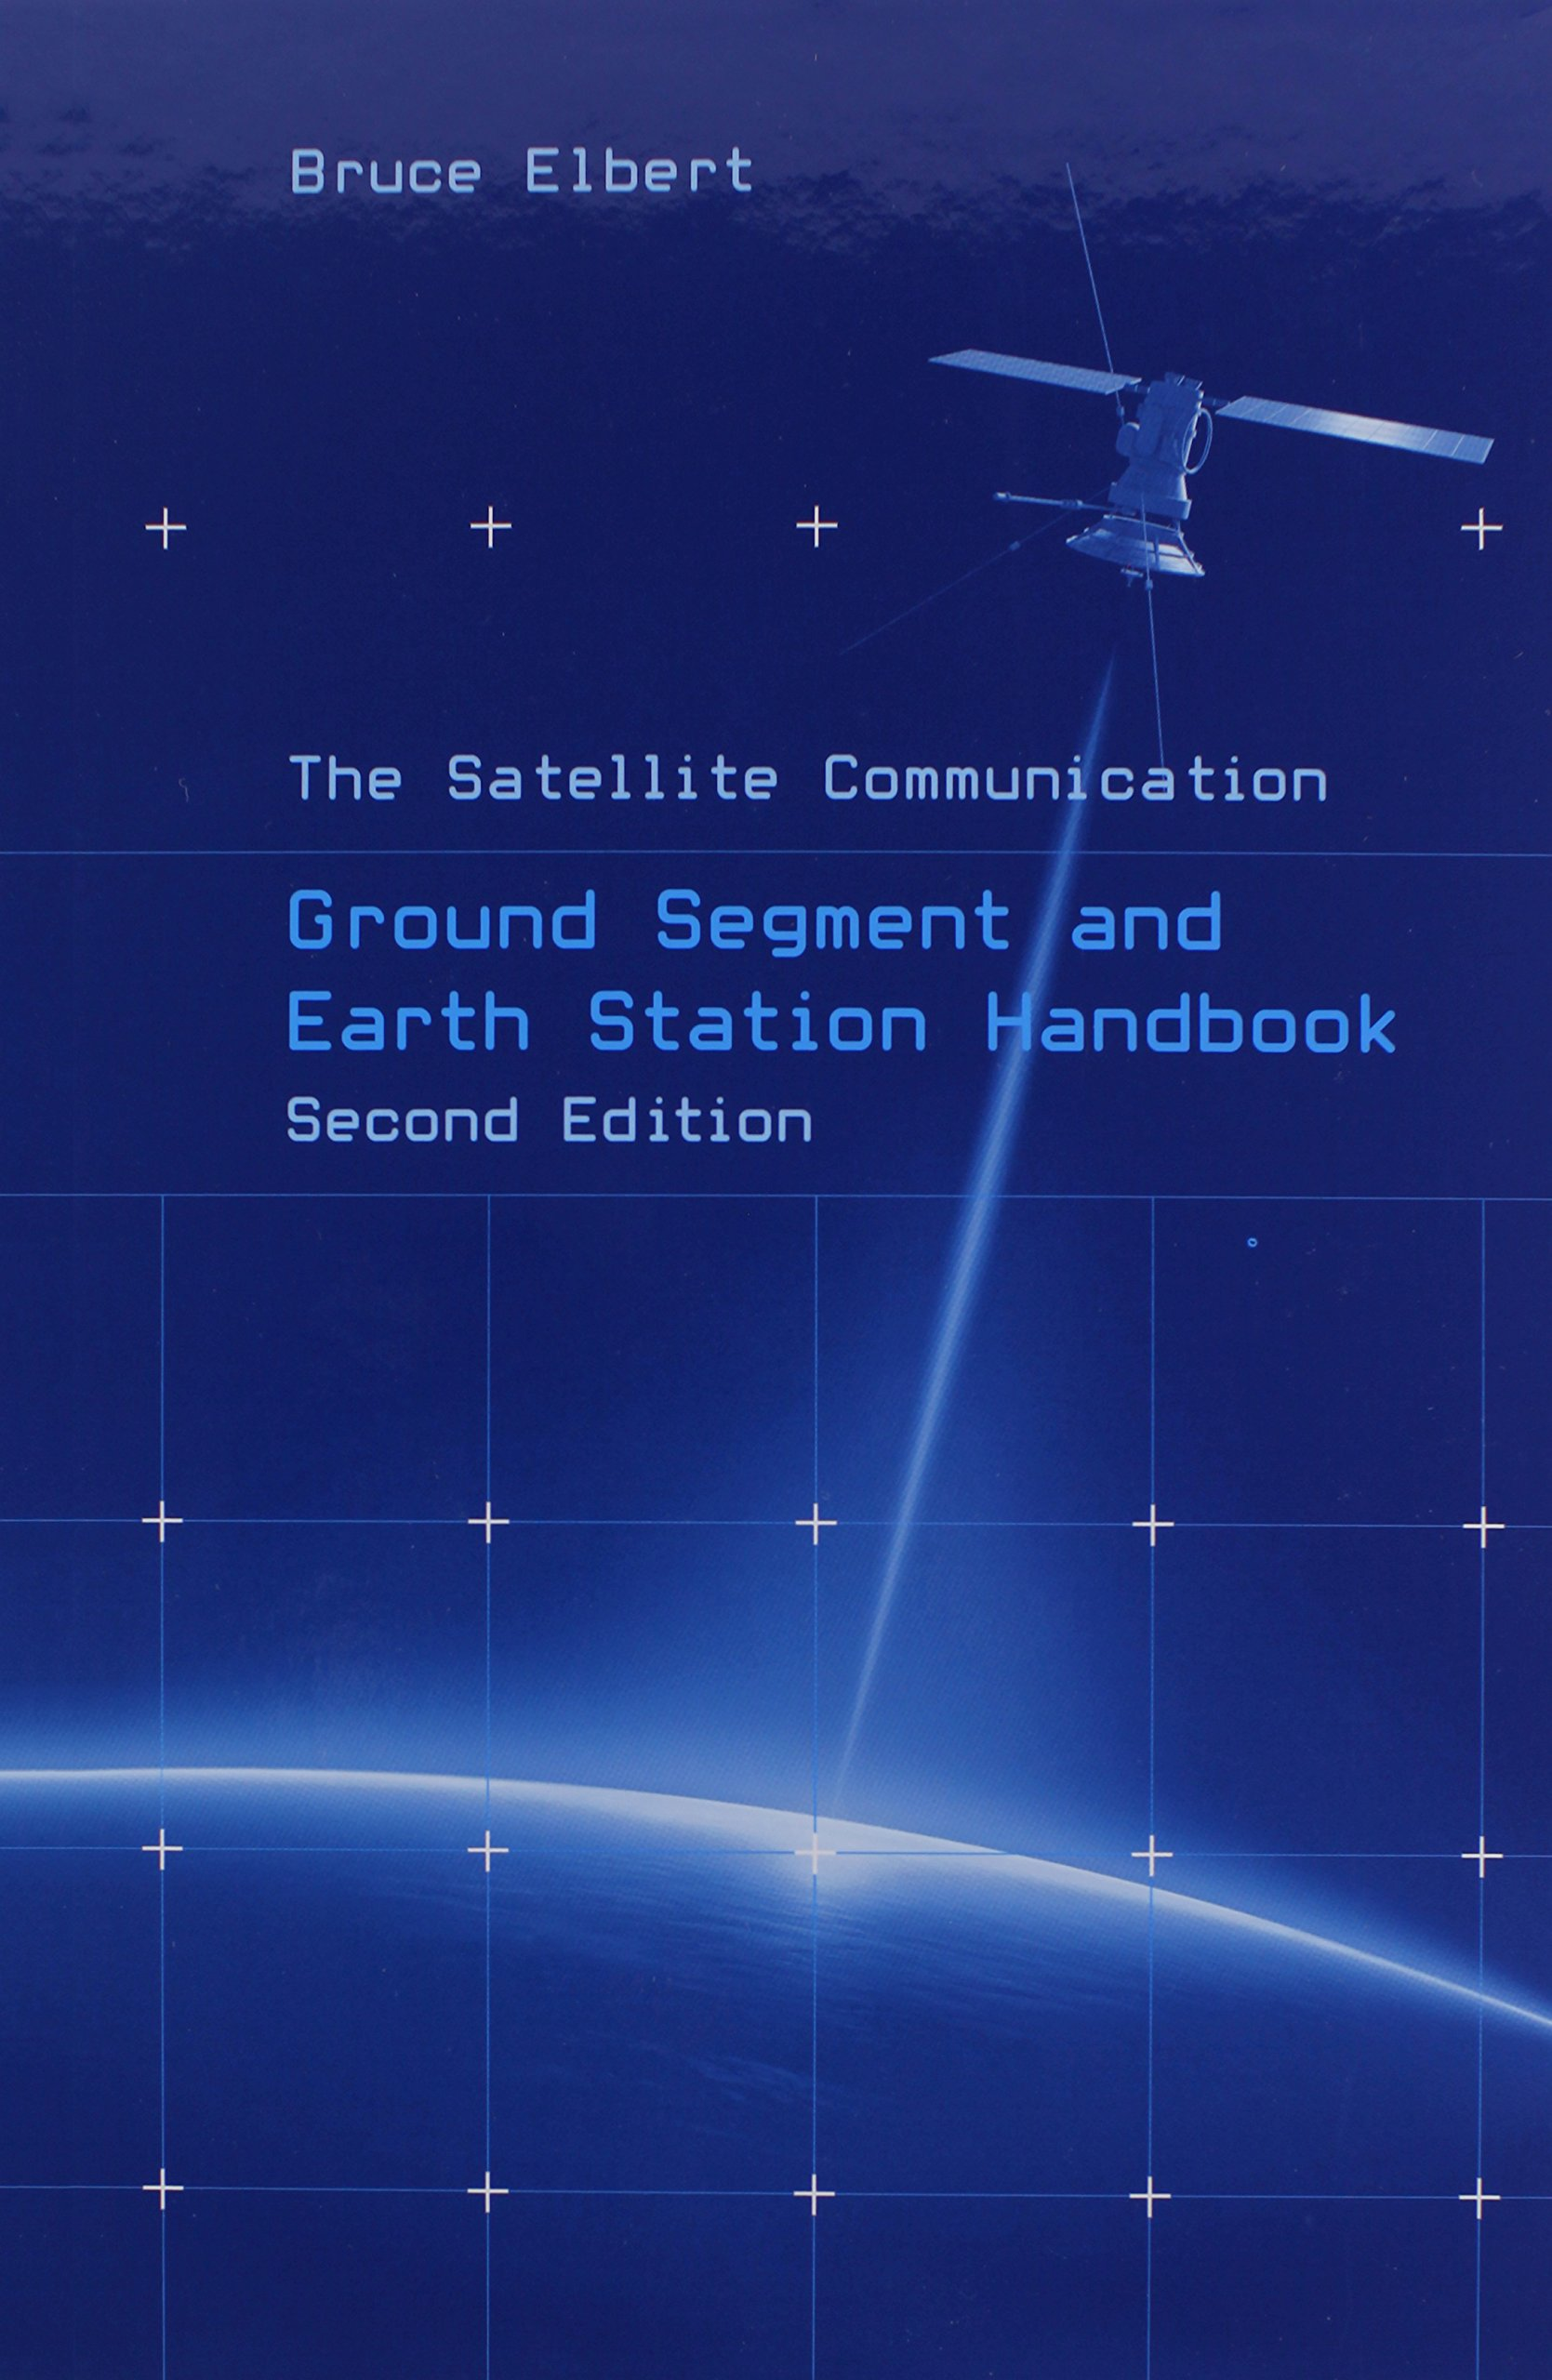 Image OfThe Satellite Communication Ground Segment And Earth Station Handbook (Artech House Space Technology And Applications)